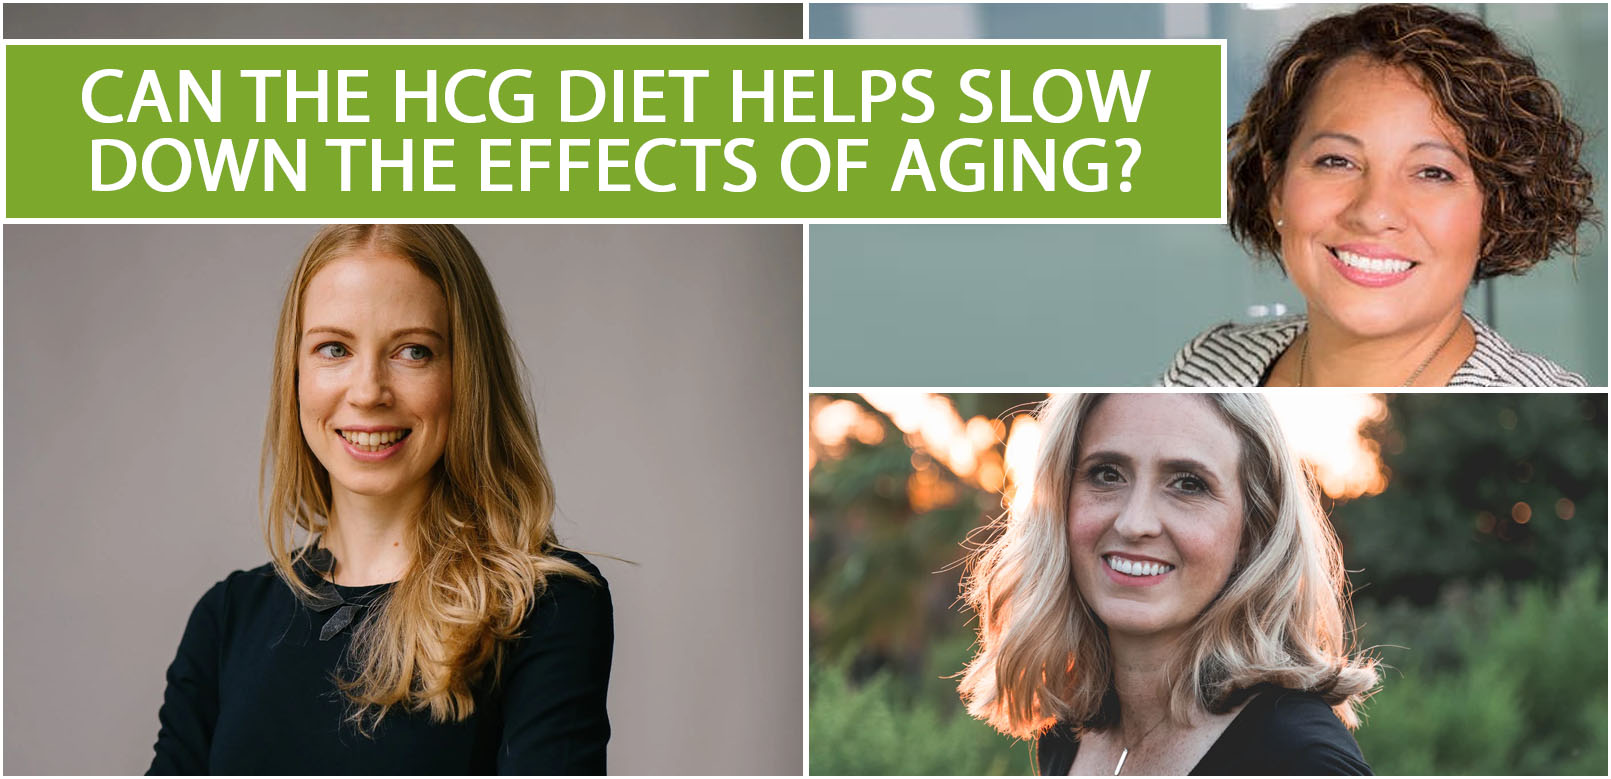 CAN THE HCG DIET HELPS SLOW DOWN THE EFFECTS OF AGING